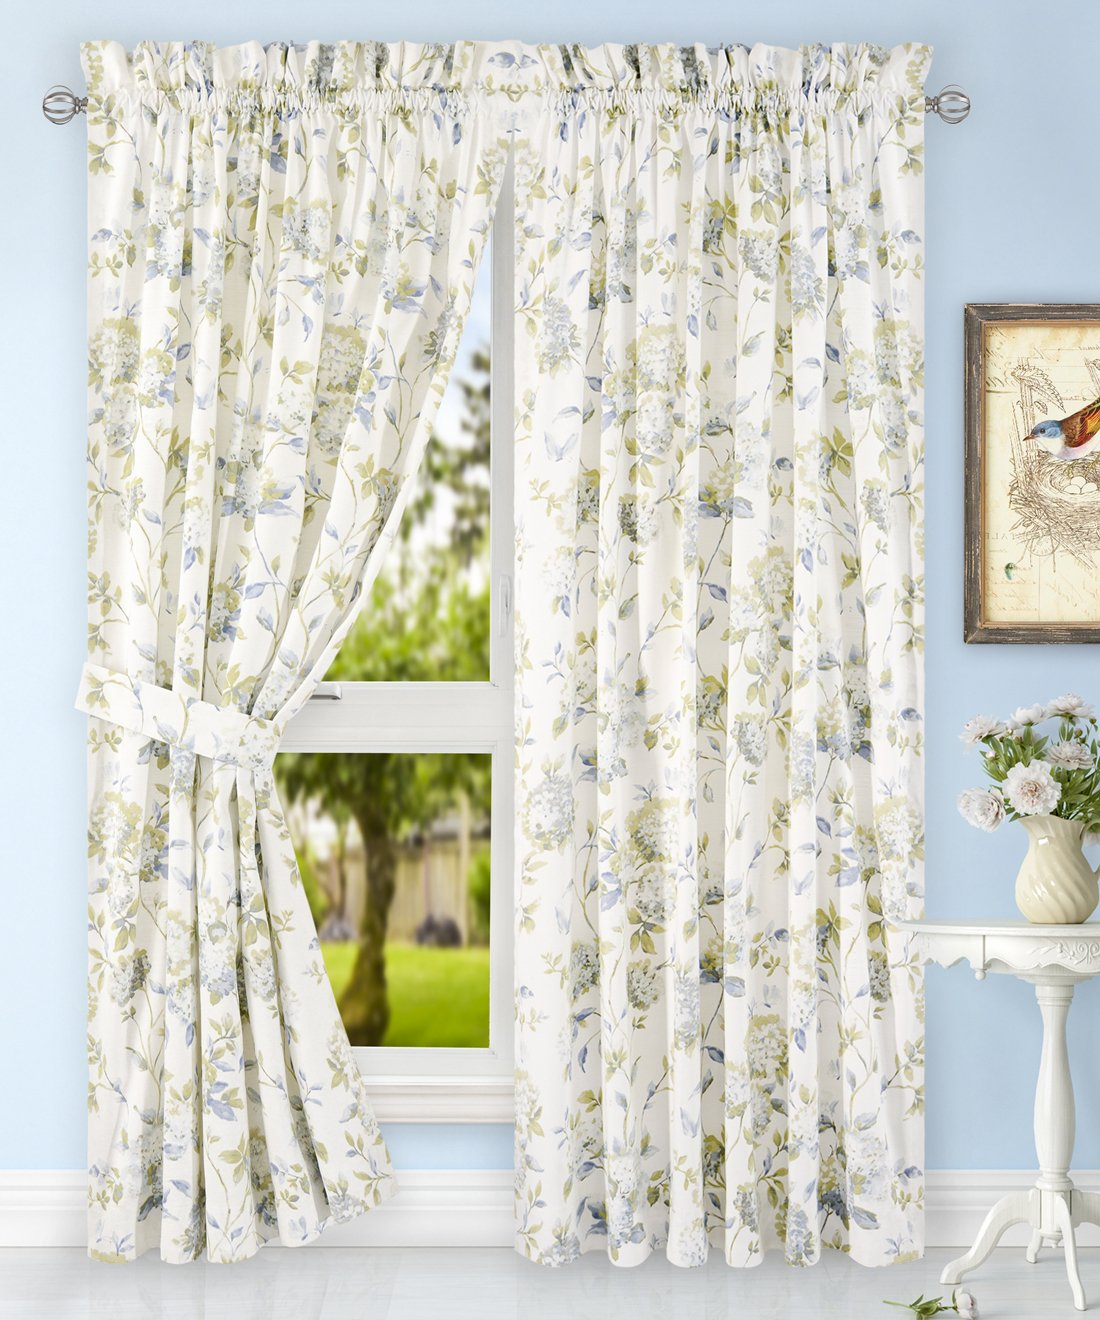 Simple Comfort Abigail Traditional Hydrangea Floral Print (Tailored Panel Pair with Tiebacks, 90 x 63, Porcelain) by Simple Comfort